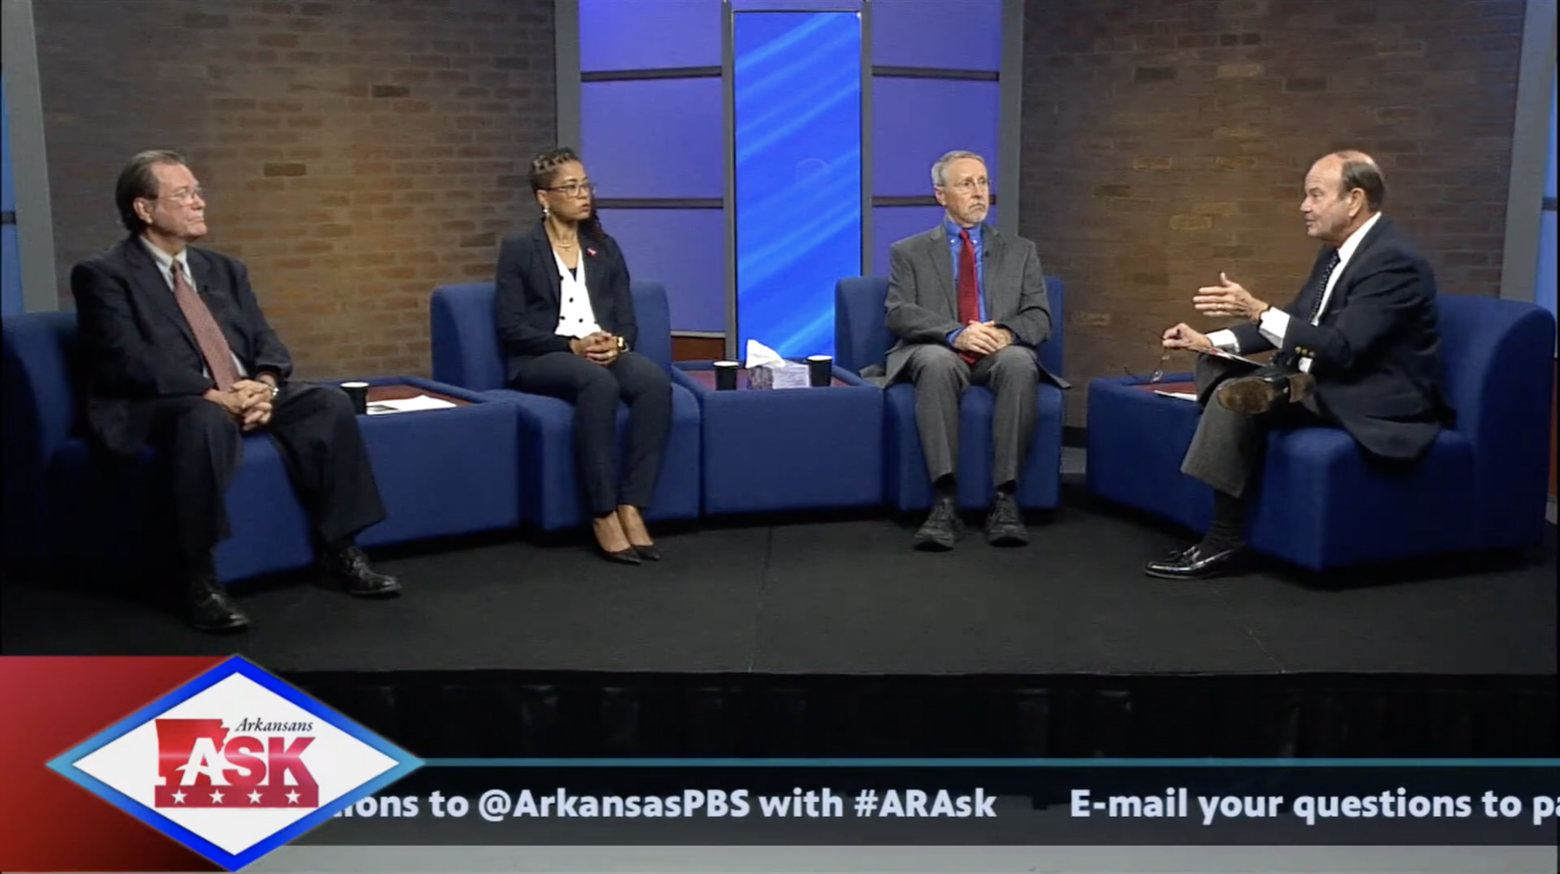 Gregg Reep takes part in live Arkansas PBS COVID-19 town hall broadcast